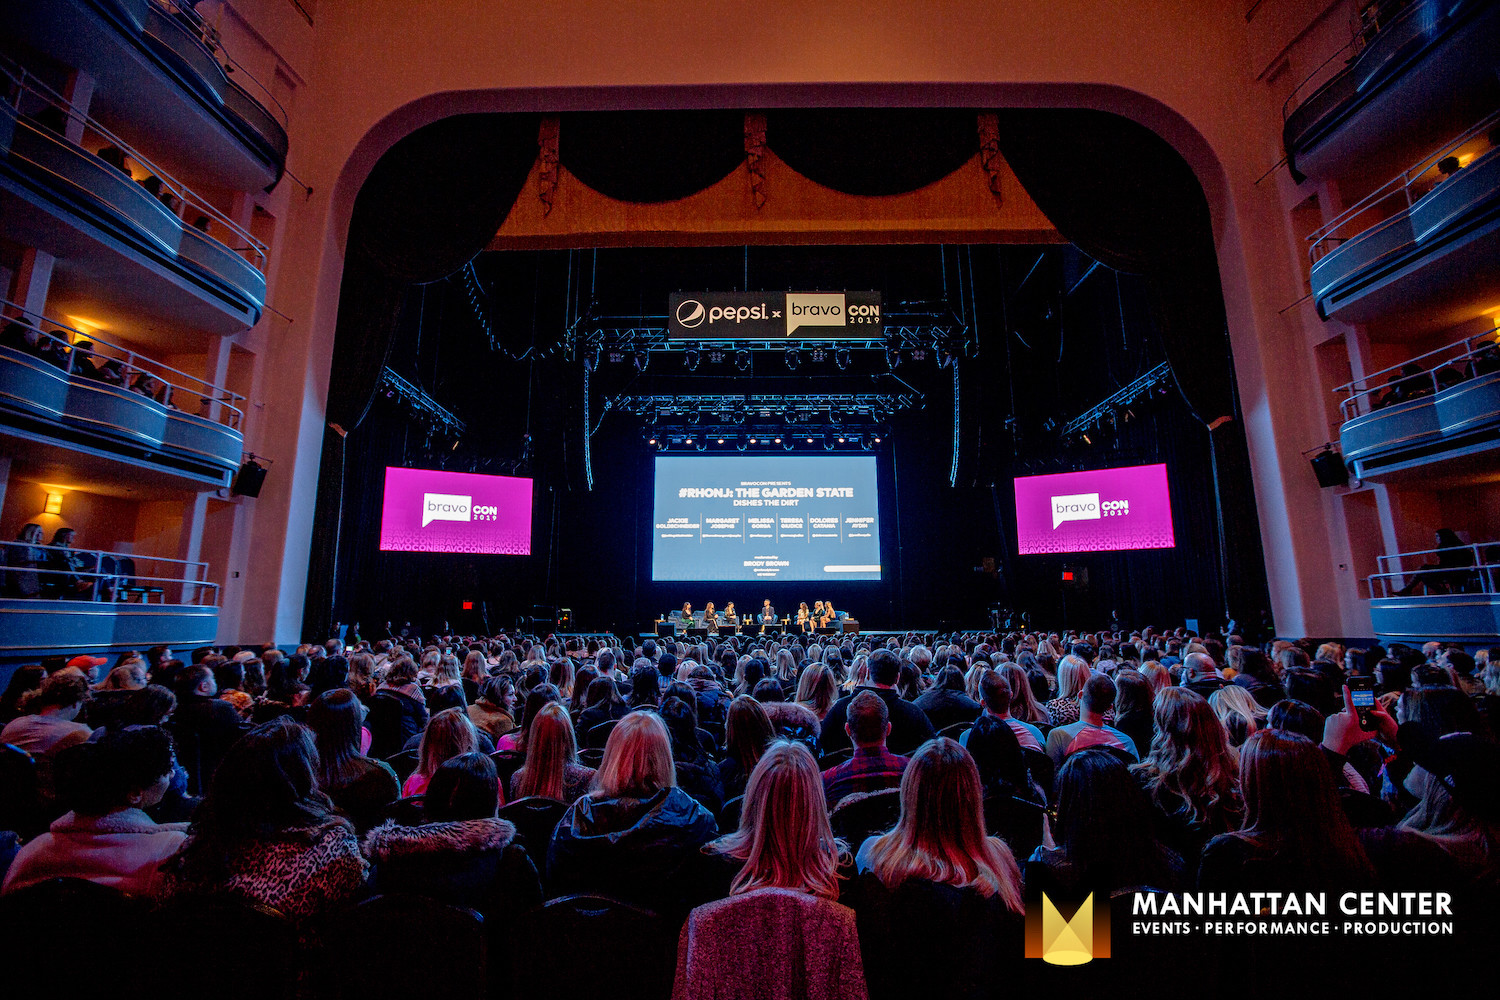 The first-ever Bravo Con in the Hammerstein Ballroom. Photo Credit: Mark Doyle